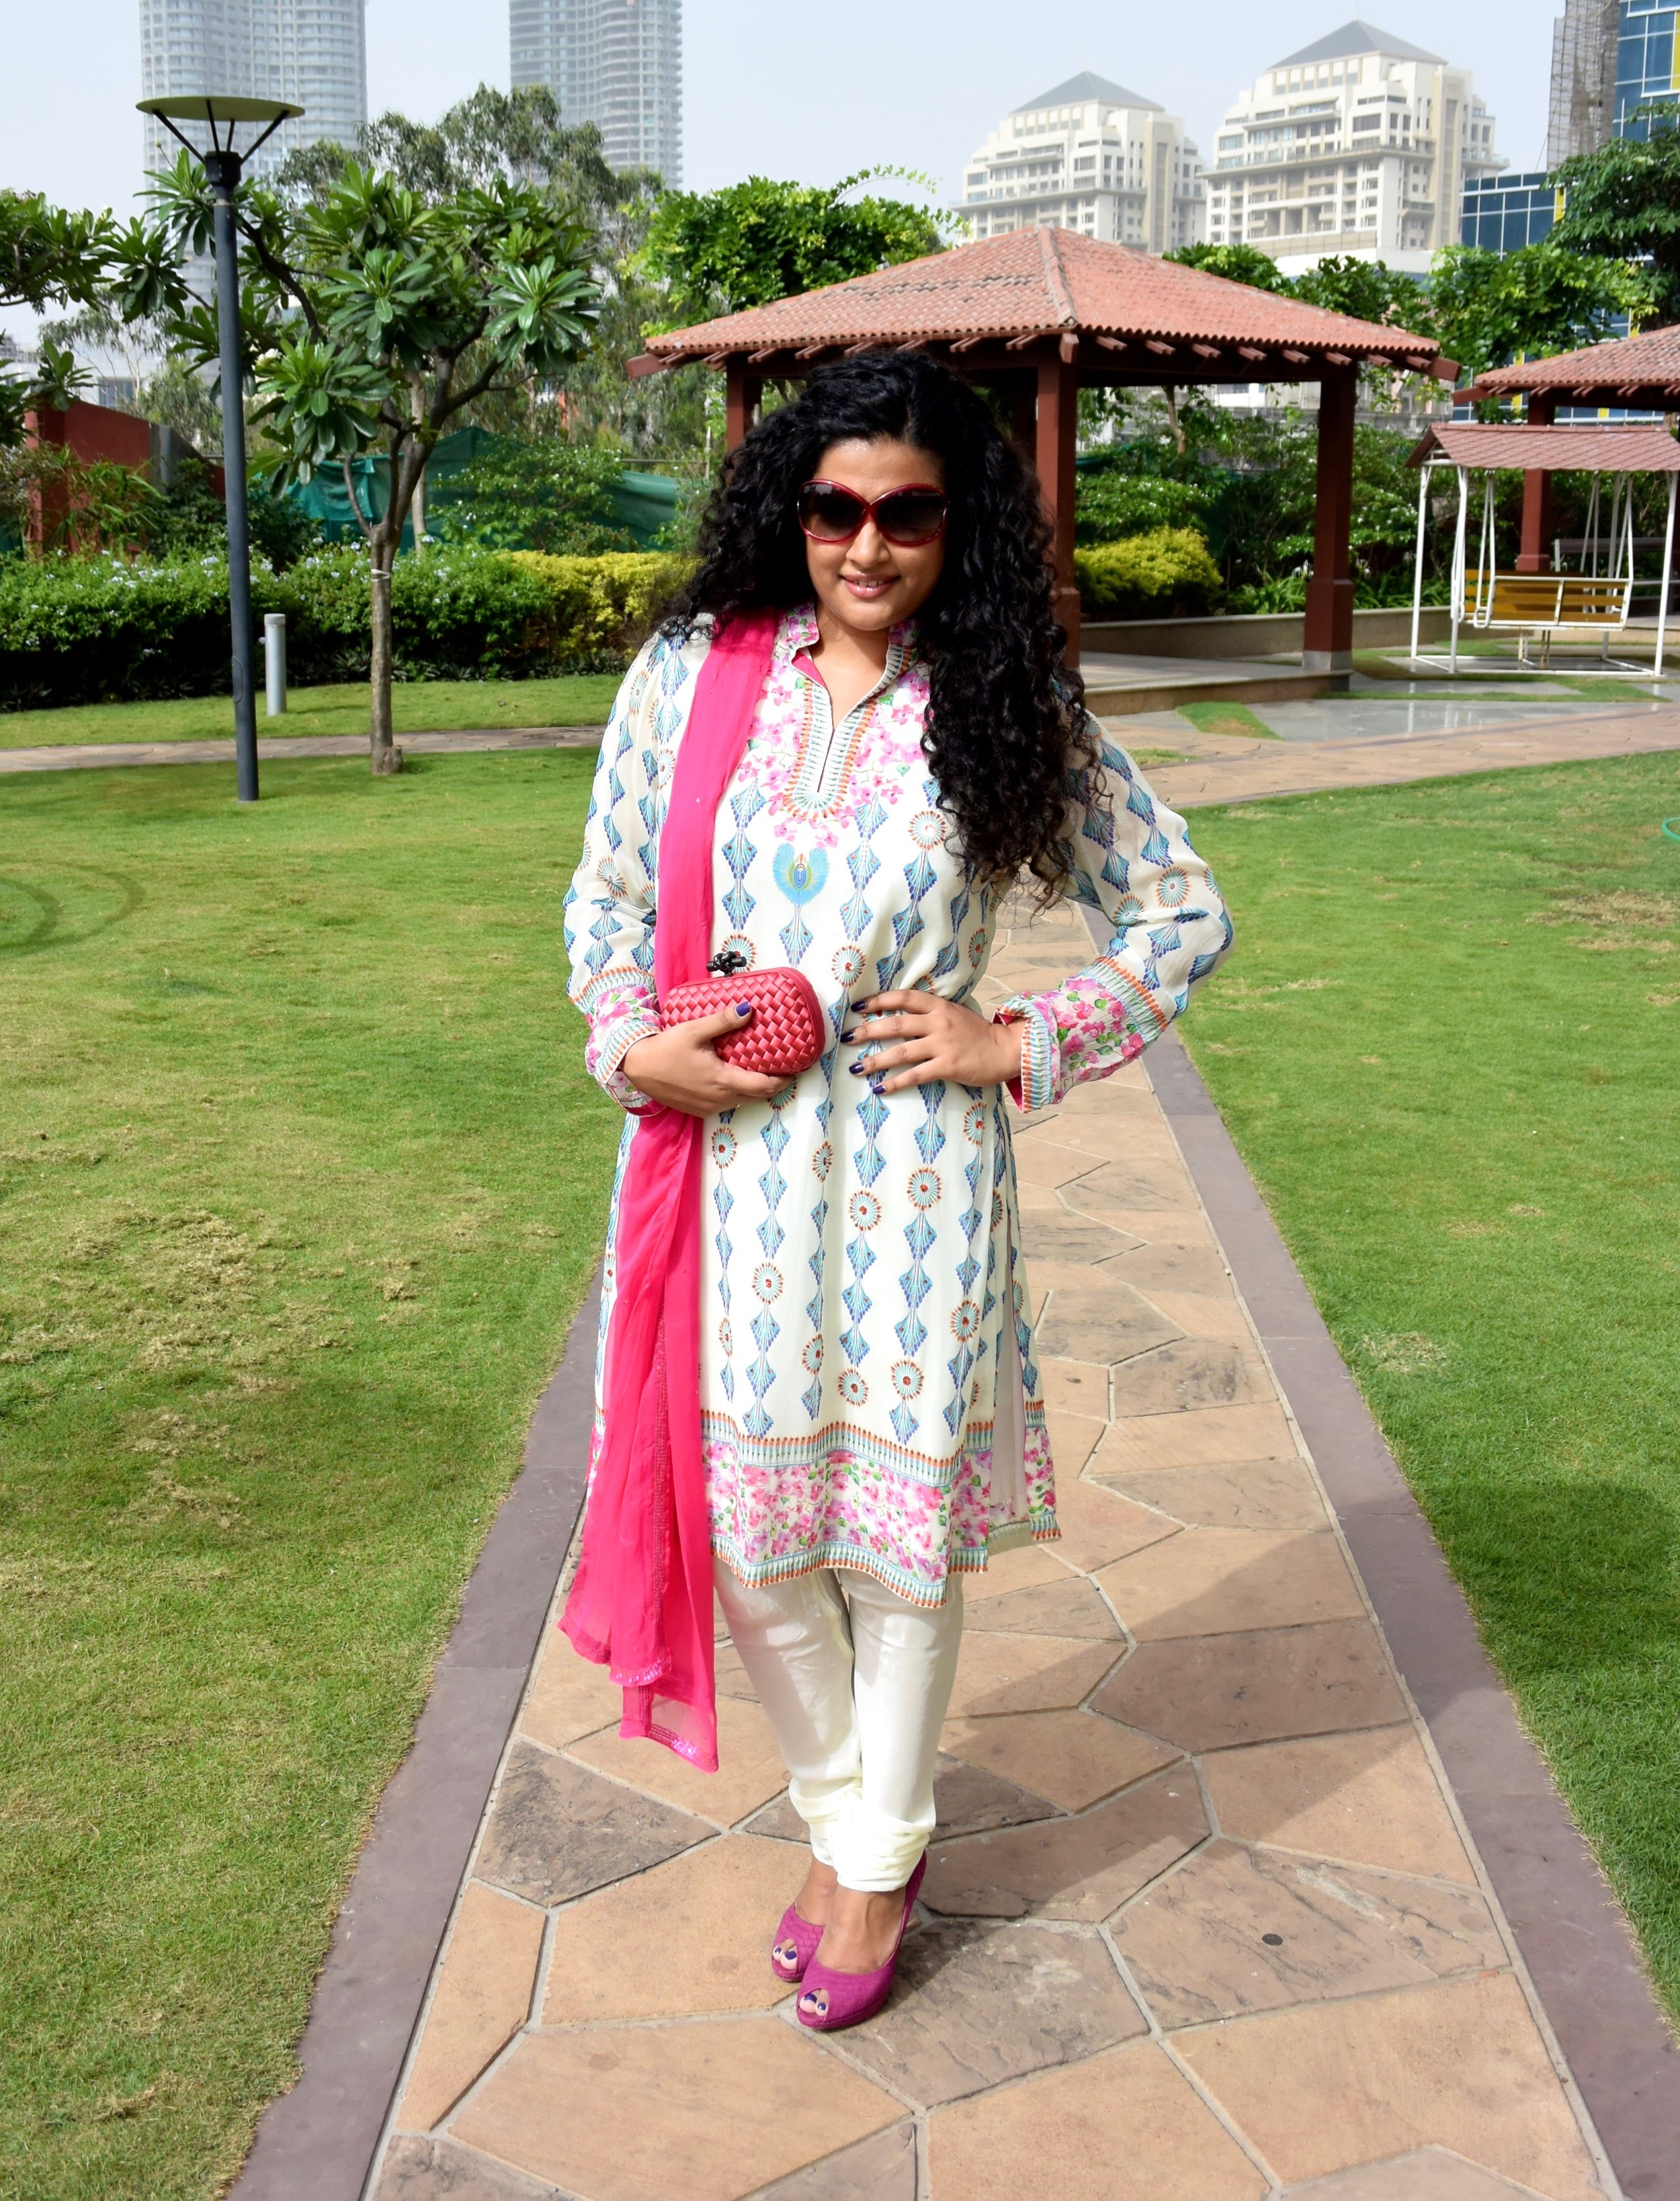 Churidar Kurta Set - Indian by Manish Arora, Clutch - Bottega Veneta, Shoes - Dior, Sunglasses - Tom Ford